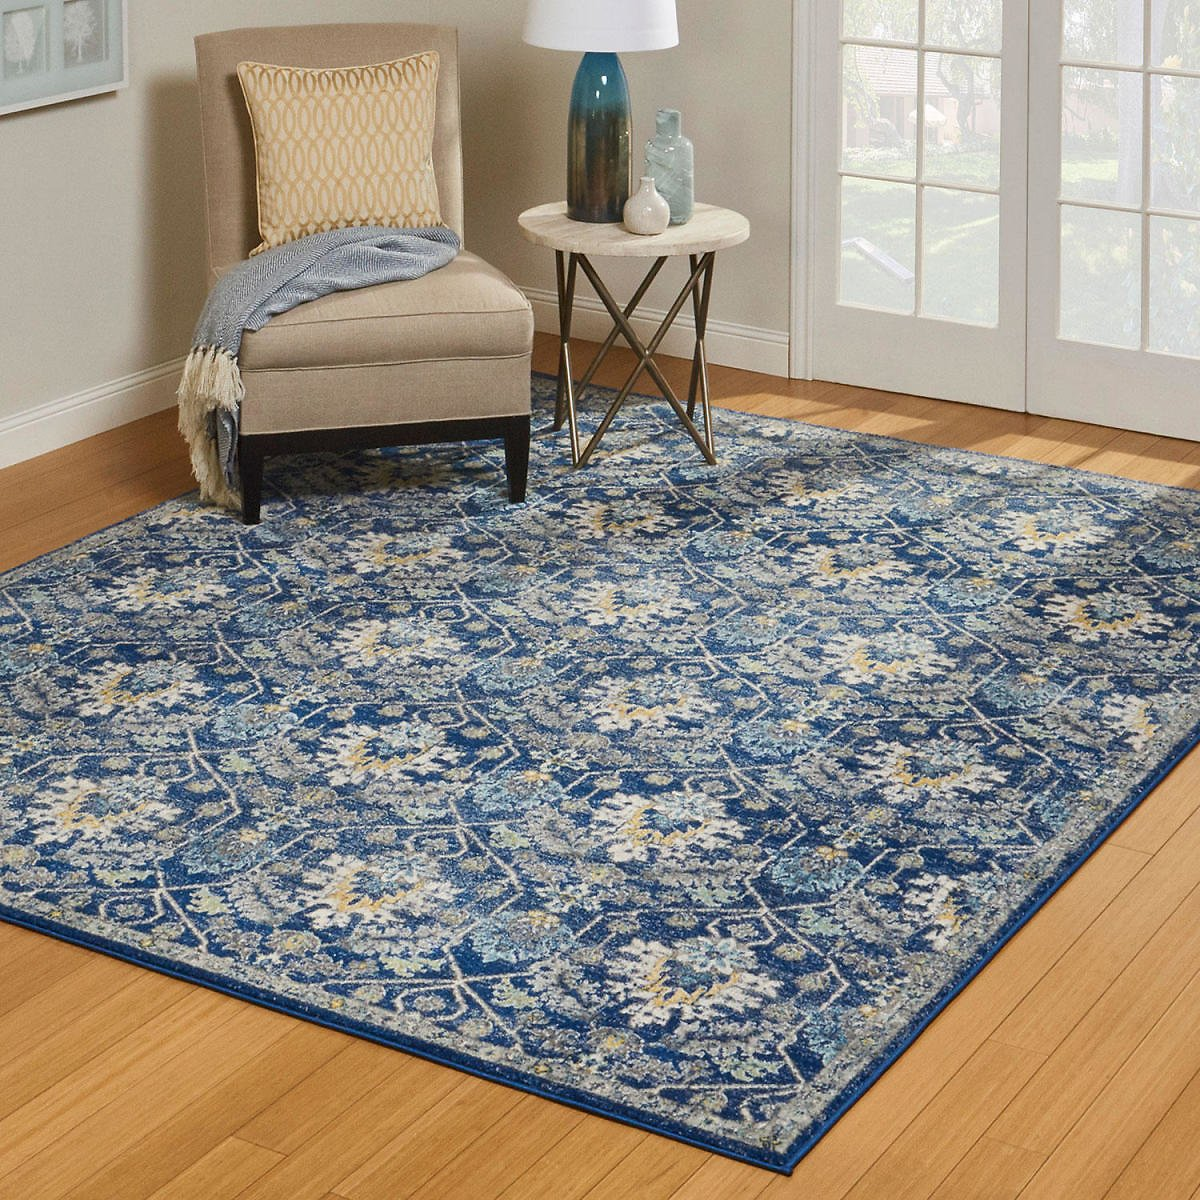 Scanda Area Rug - 8' X 10', Marlow Blue